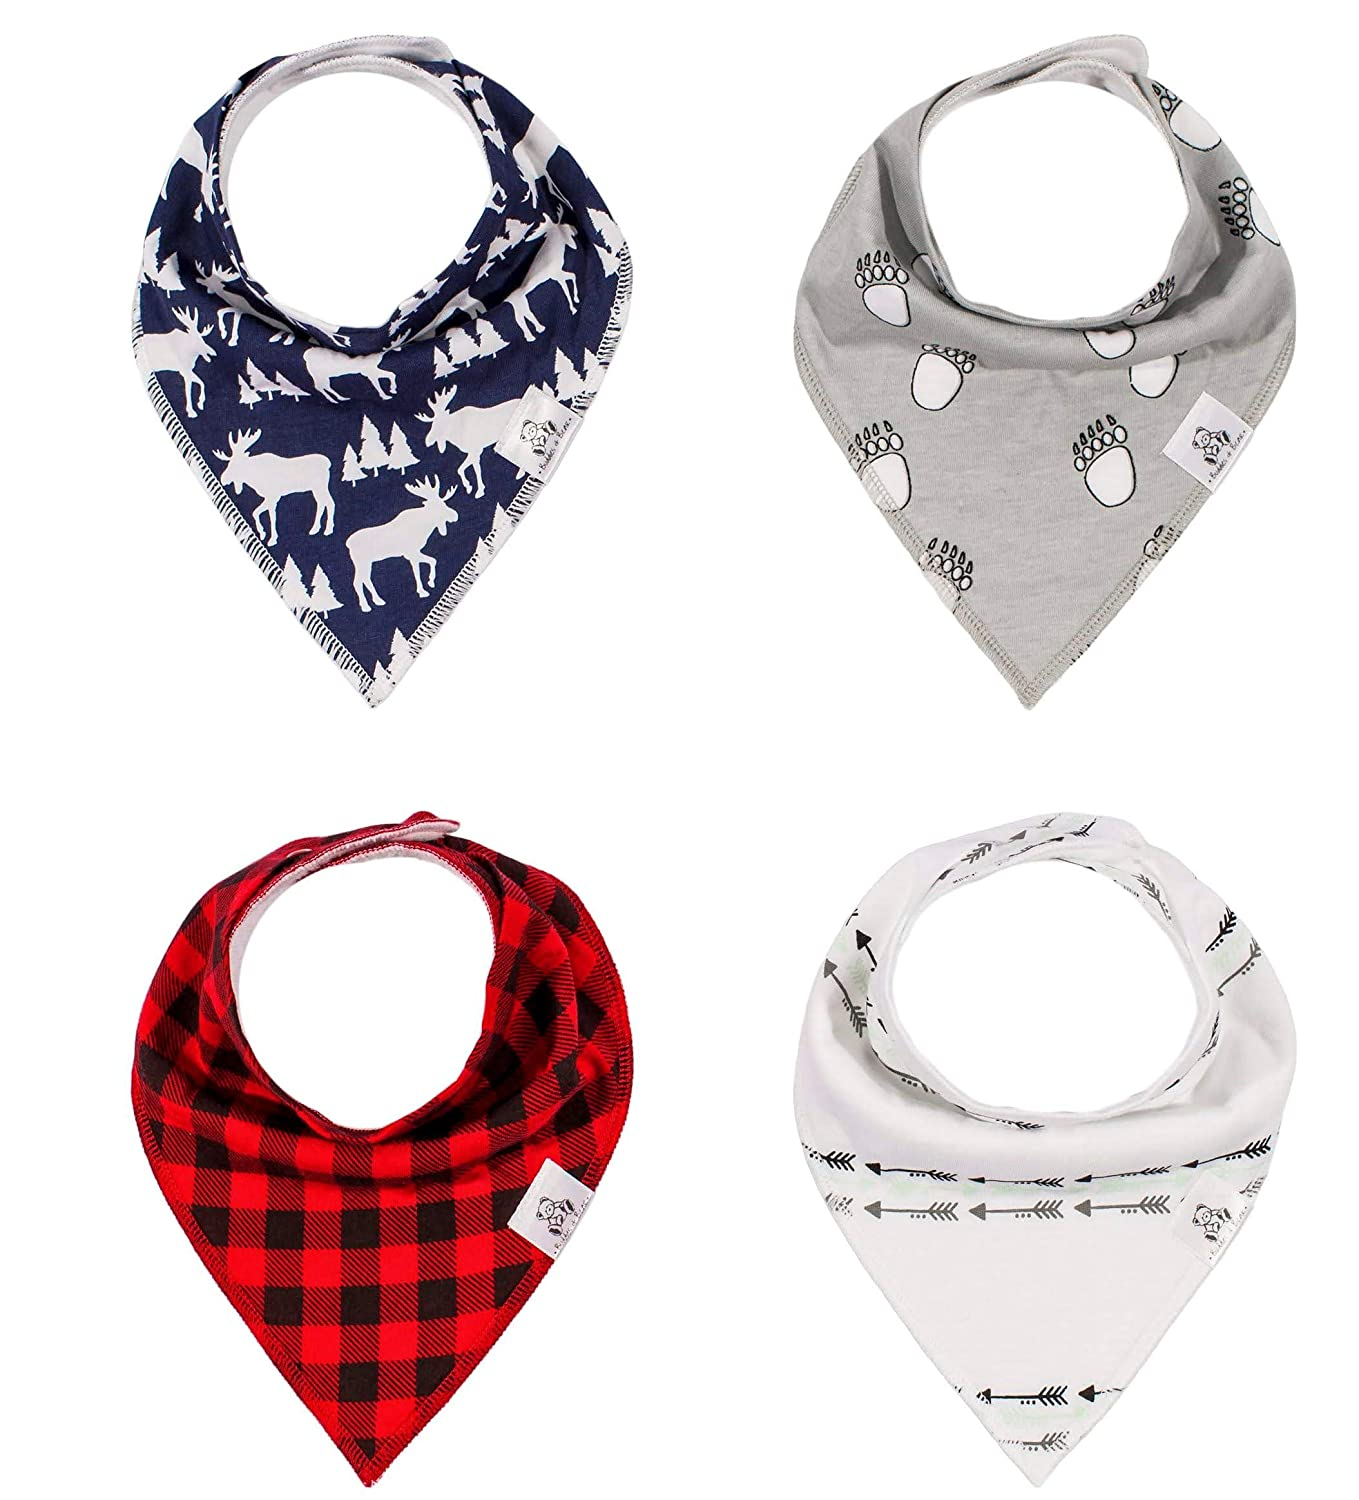 Baby Bandana Drool Bib 4 Piece Set, Best for Teething and Drooling, Absorbent and Soft, 'The Logan Pack' for Boys and Girls by Buddies + Bear, 100% Organic Cotton + Polyester Fleece, Registry Gift The Logan Pack for Boys and Girls by Buddies + Bear